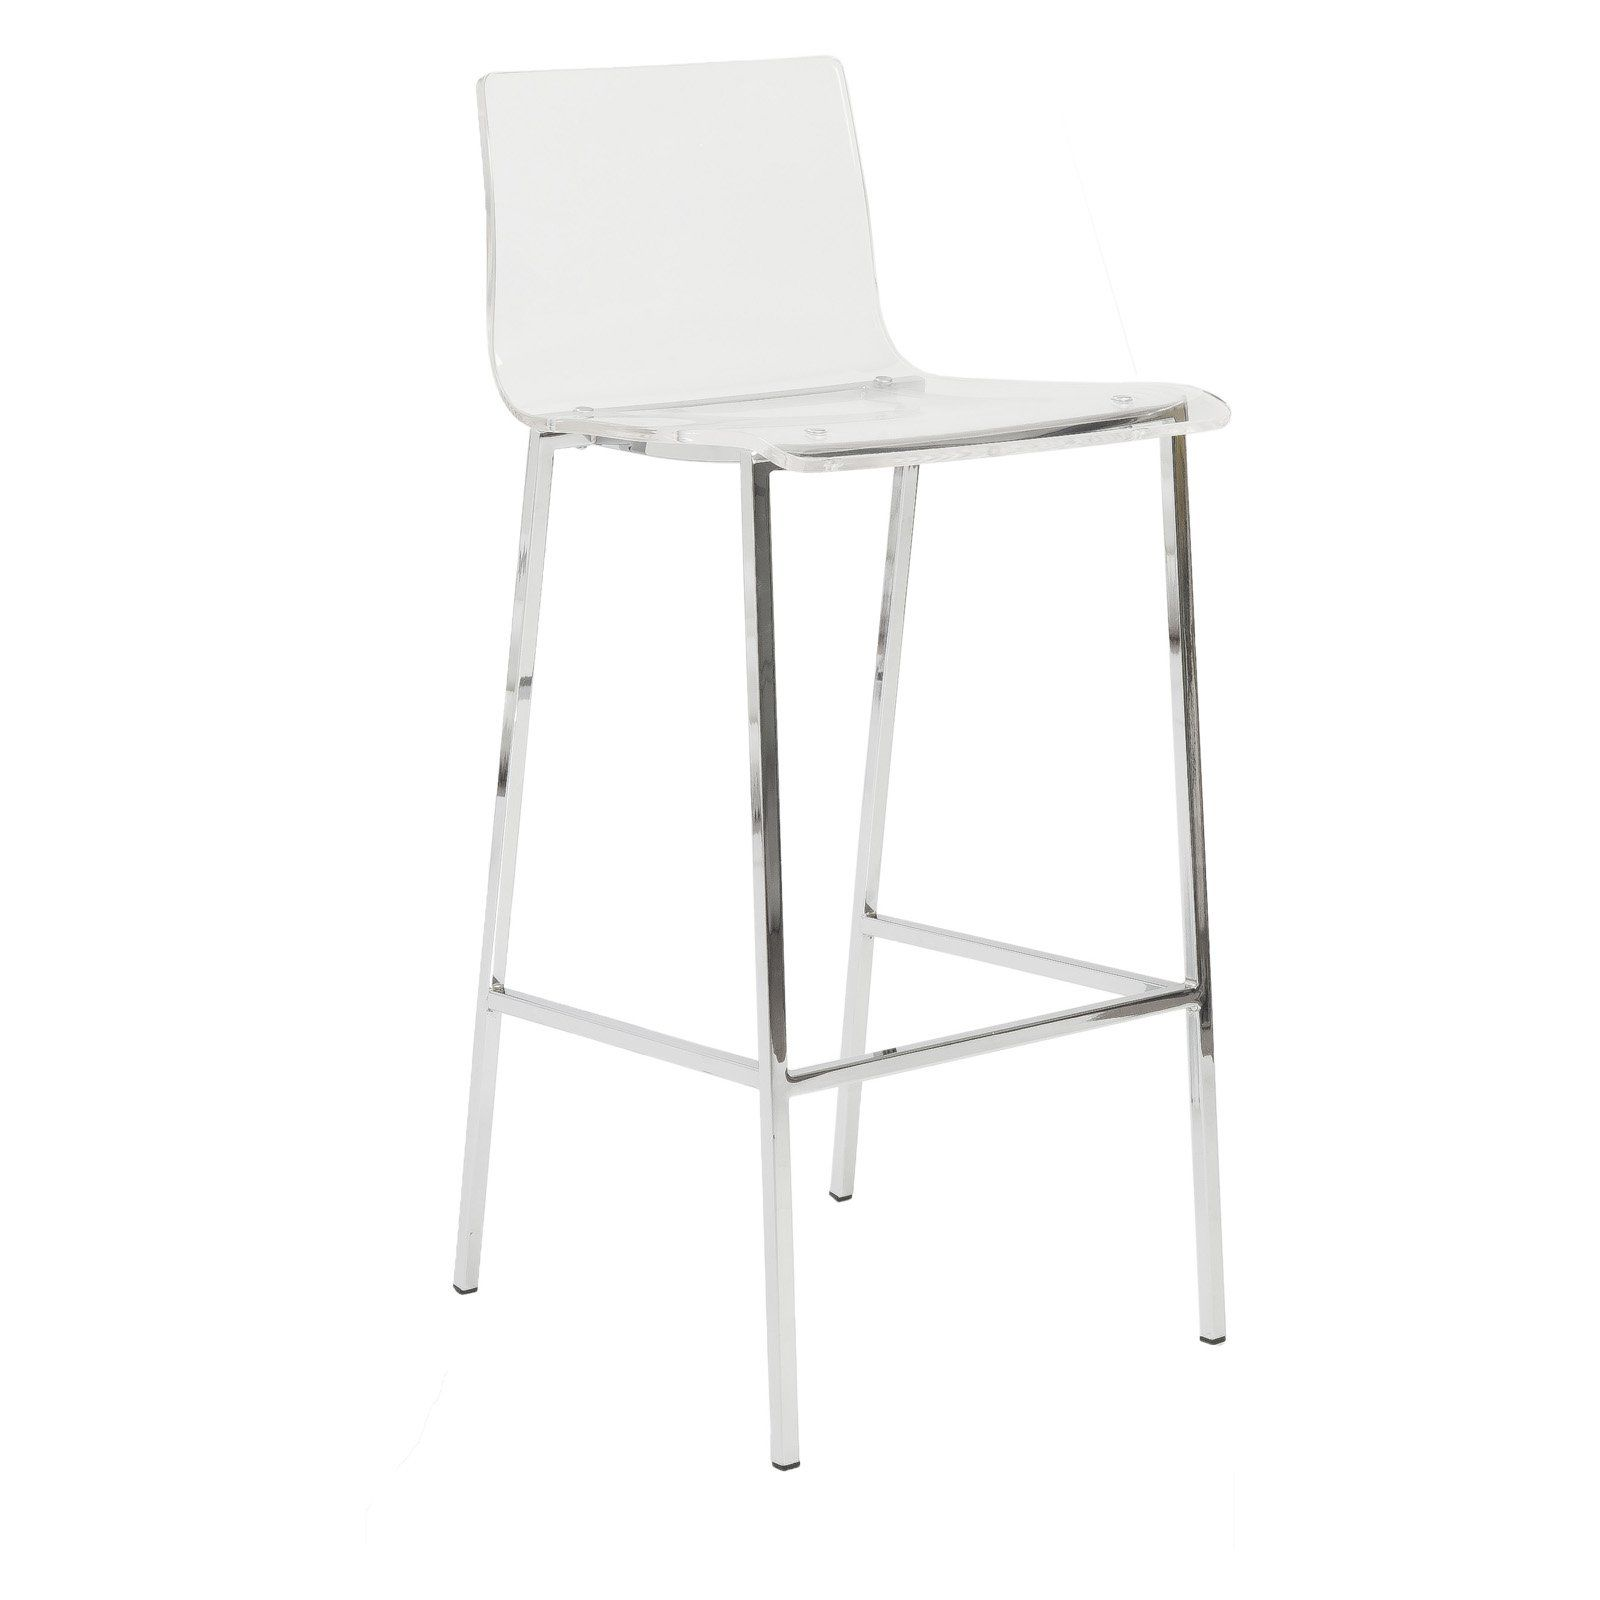 Euro Style Chloe Acrylic Bar Stools  Set Of 2